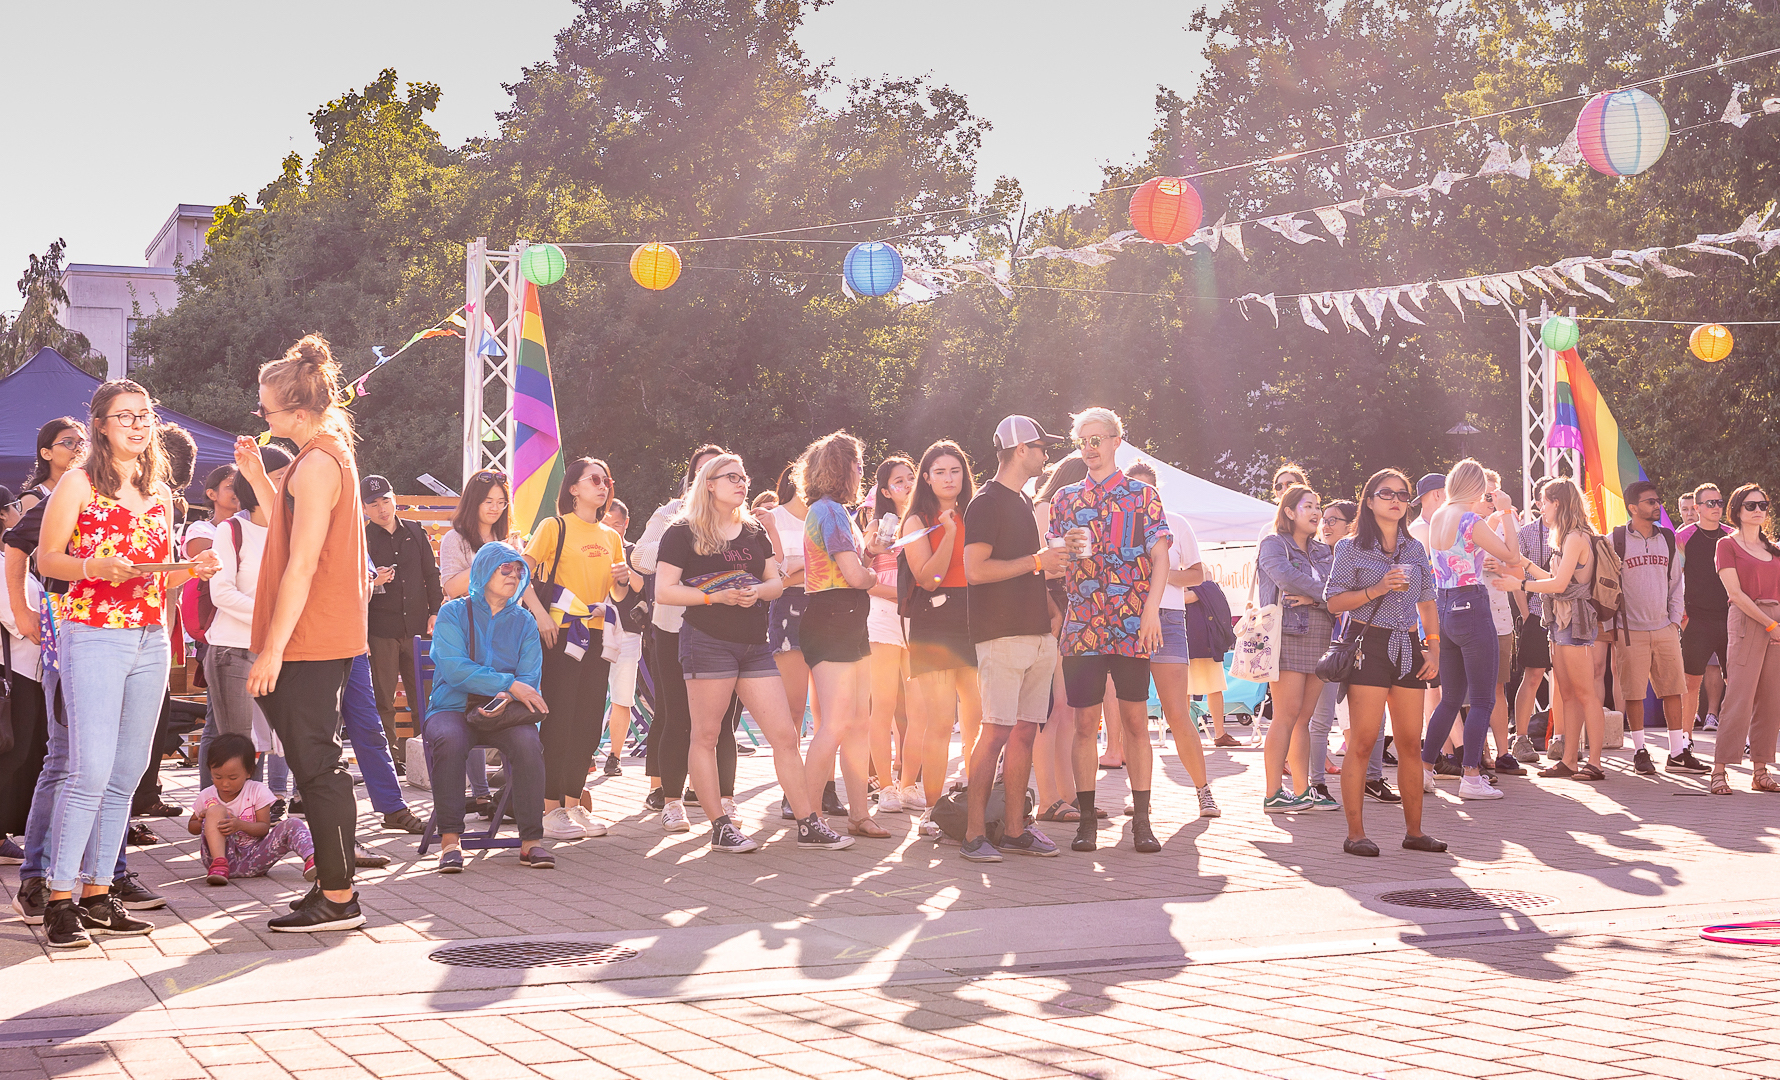 UBC Student Nest Plaza - We teamed up with Utown UBC to produce their first annual pride celebration in the plaza outside the AMS Student Nest. The Nest is a student-centered hub of activity, providing a welcoming space for all students to eat, shop, study, and socialize.